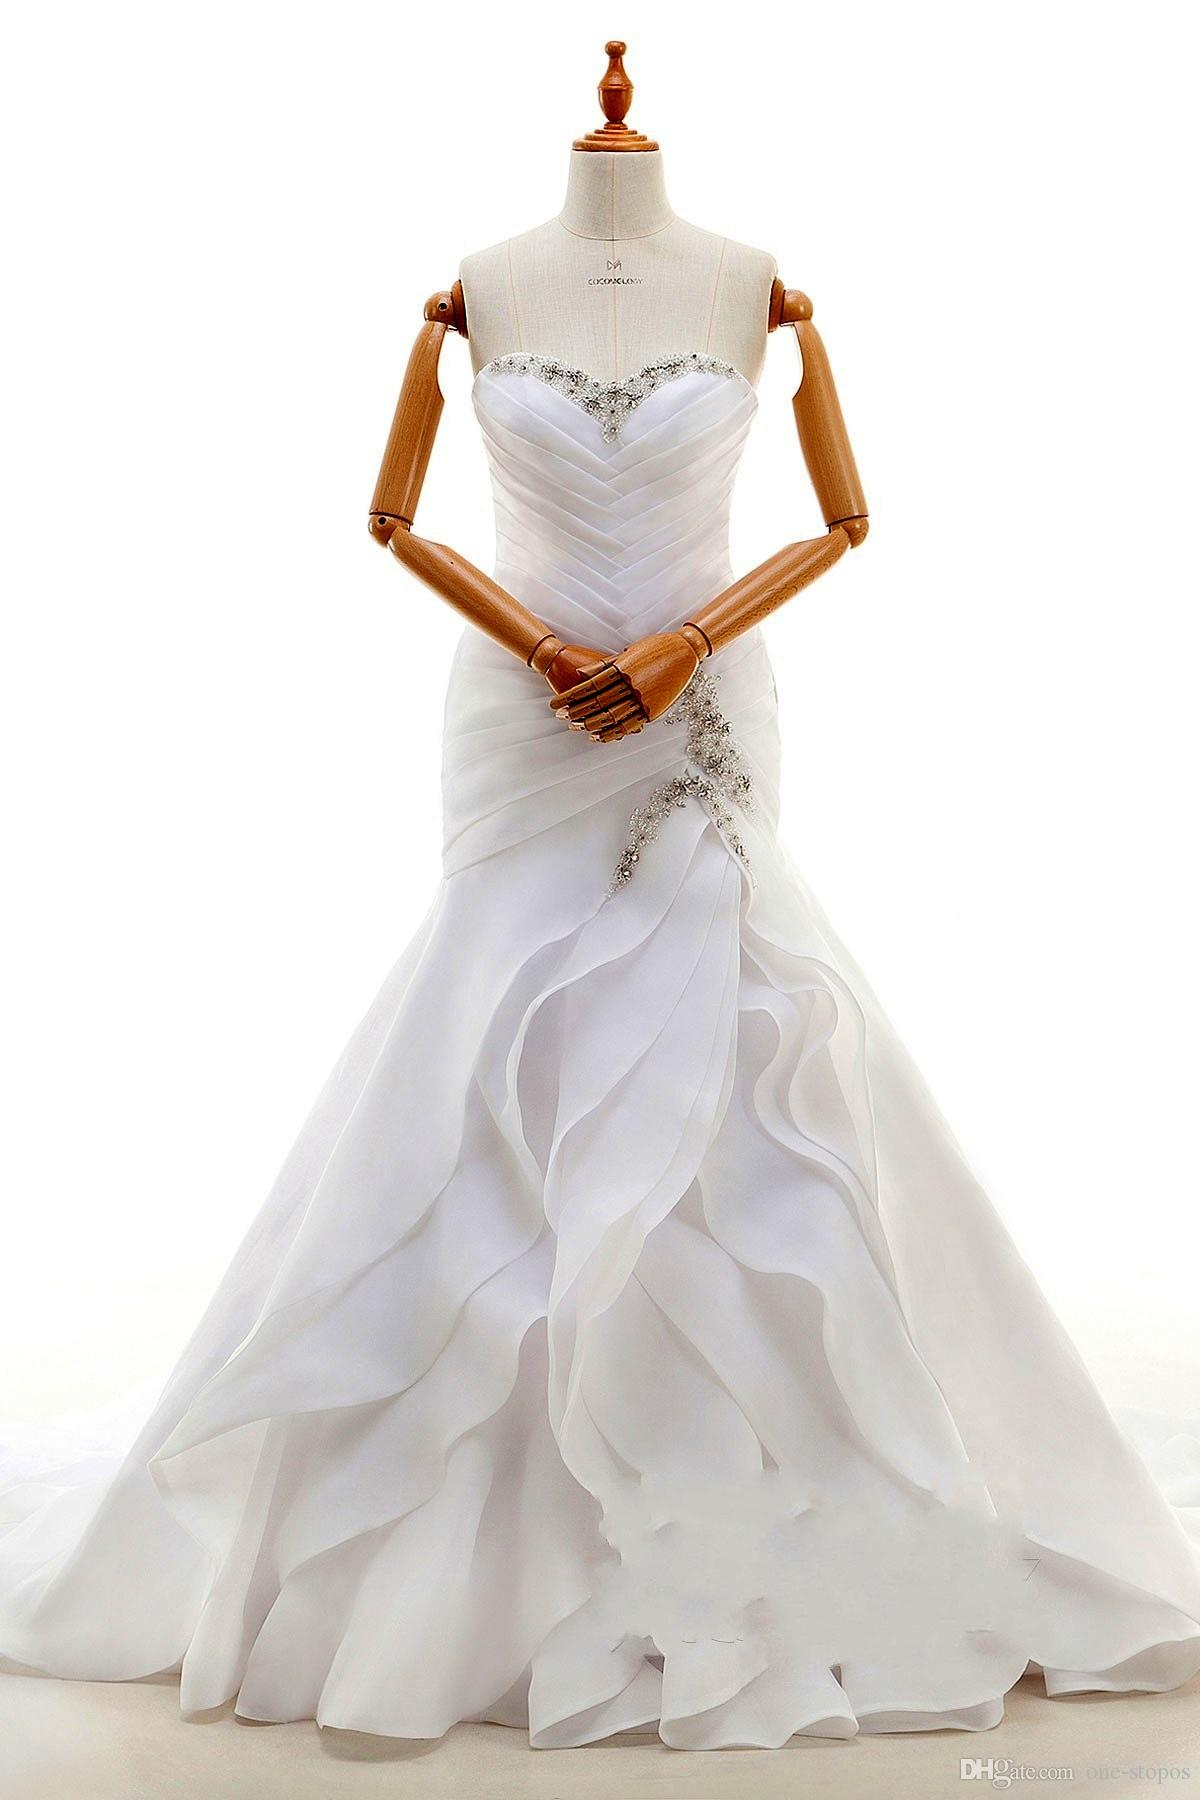 2018 White Strapless Mermaid Wedding Dresses Long Chiffon Beaded Sweetheart Bridal Gowns Lace up Cascading Ruffles Plus size Dresses